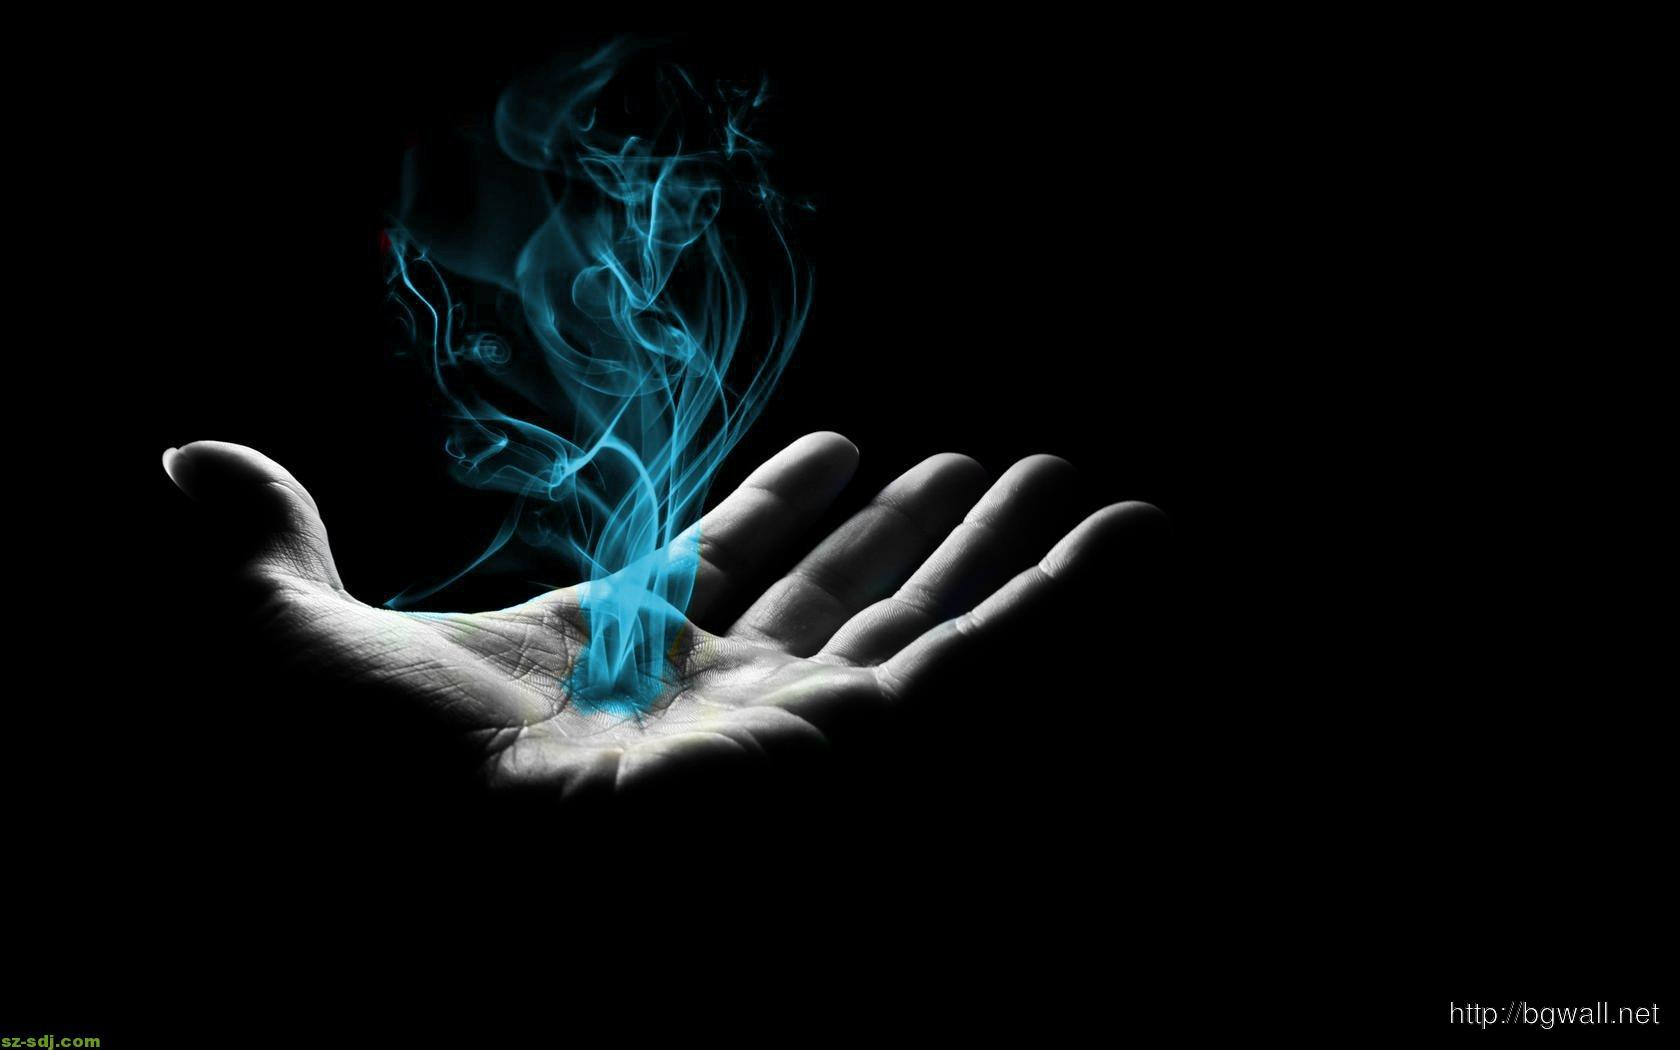 blue-smoke-on-hand-wallpaper-abstact